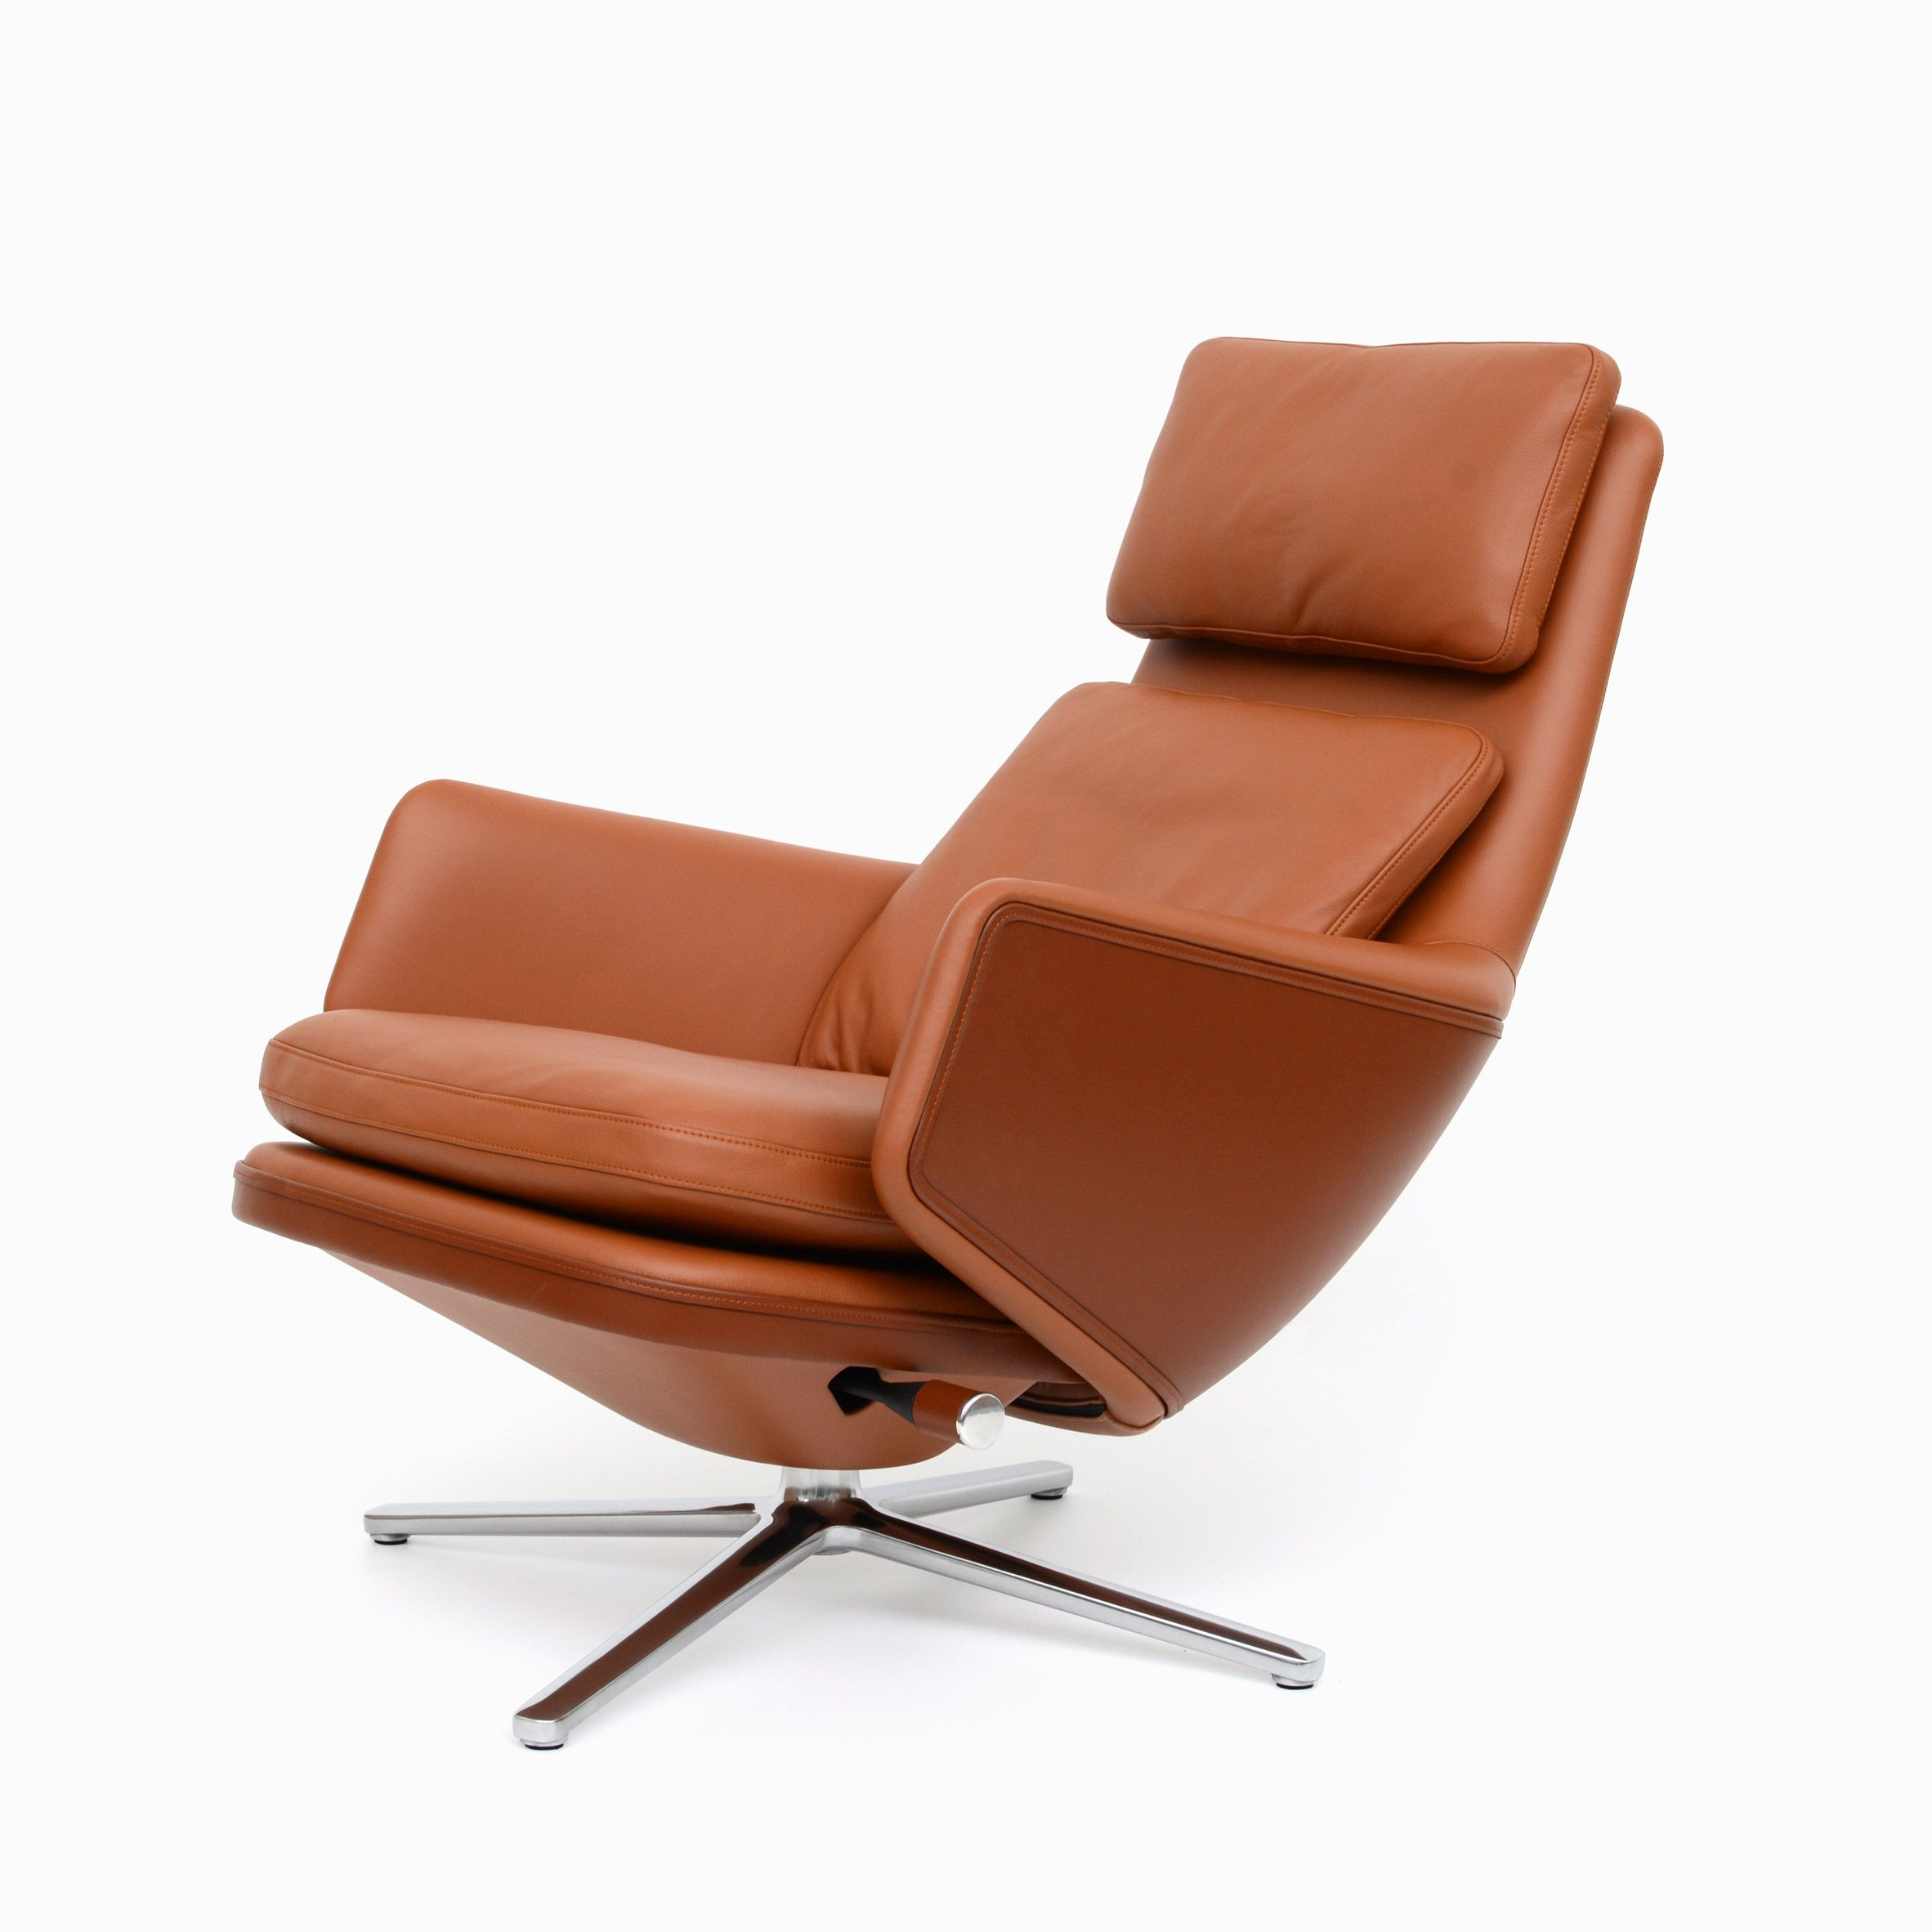 Fauteuil Cuir Vitra Pin On F F E